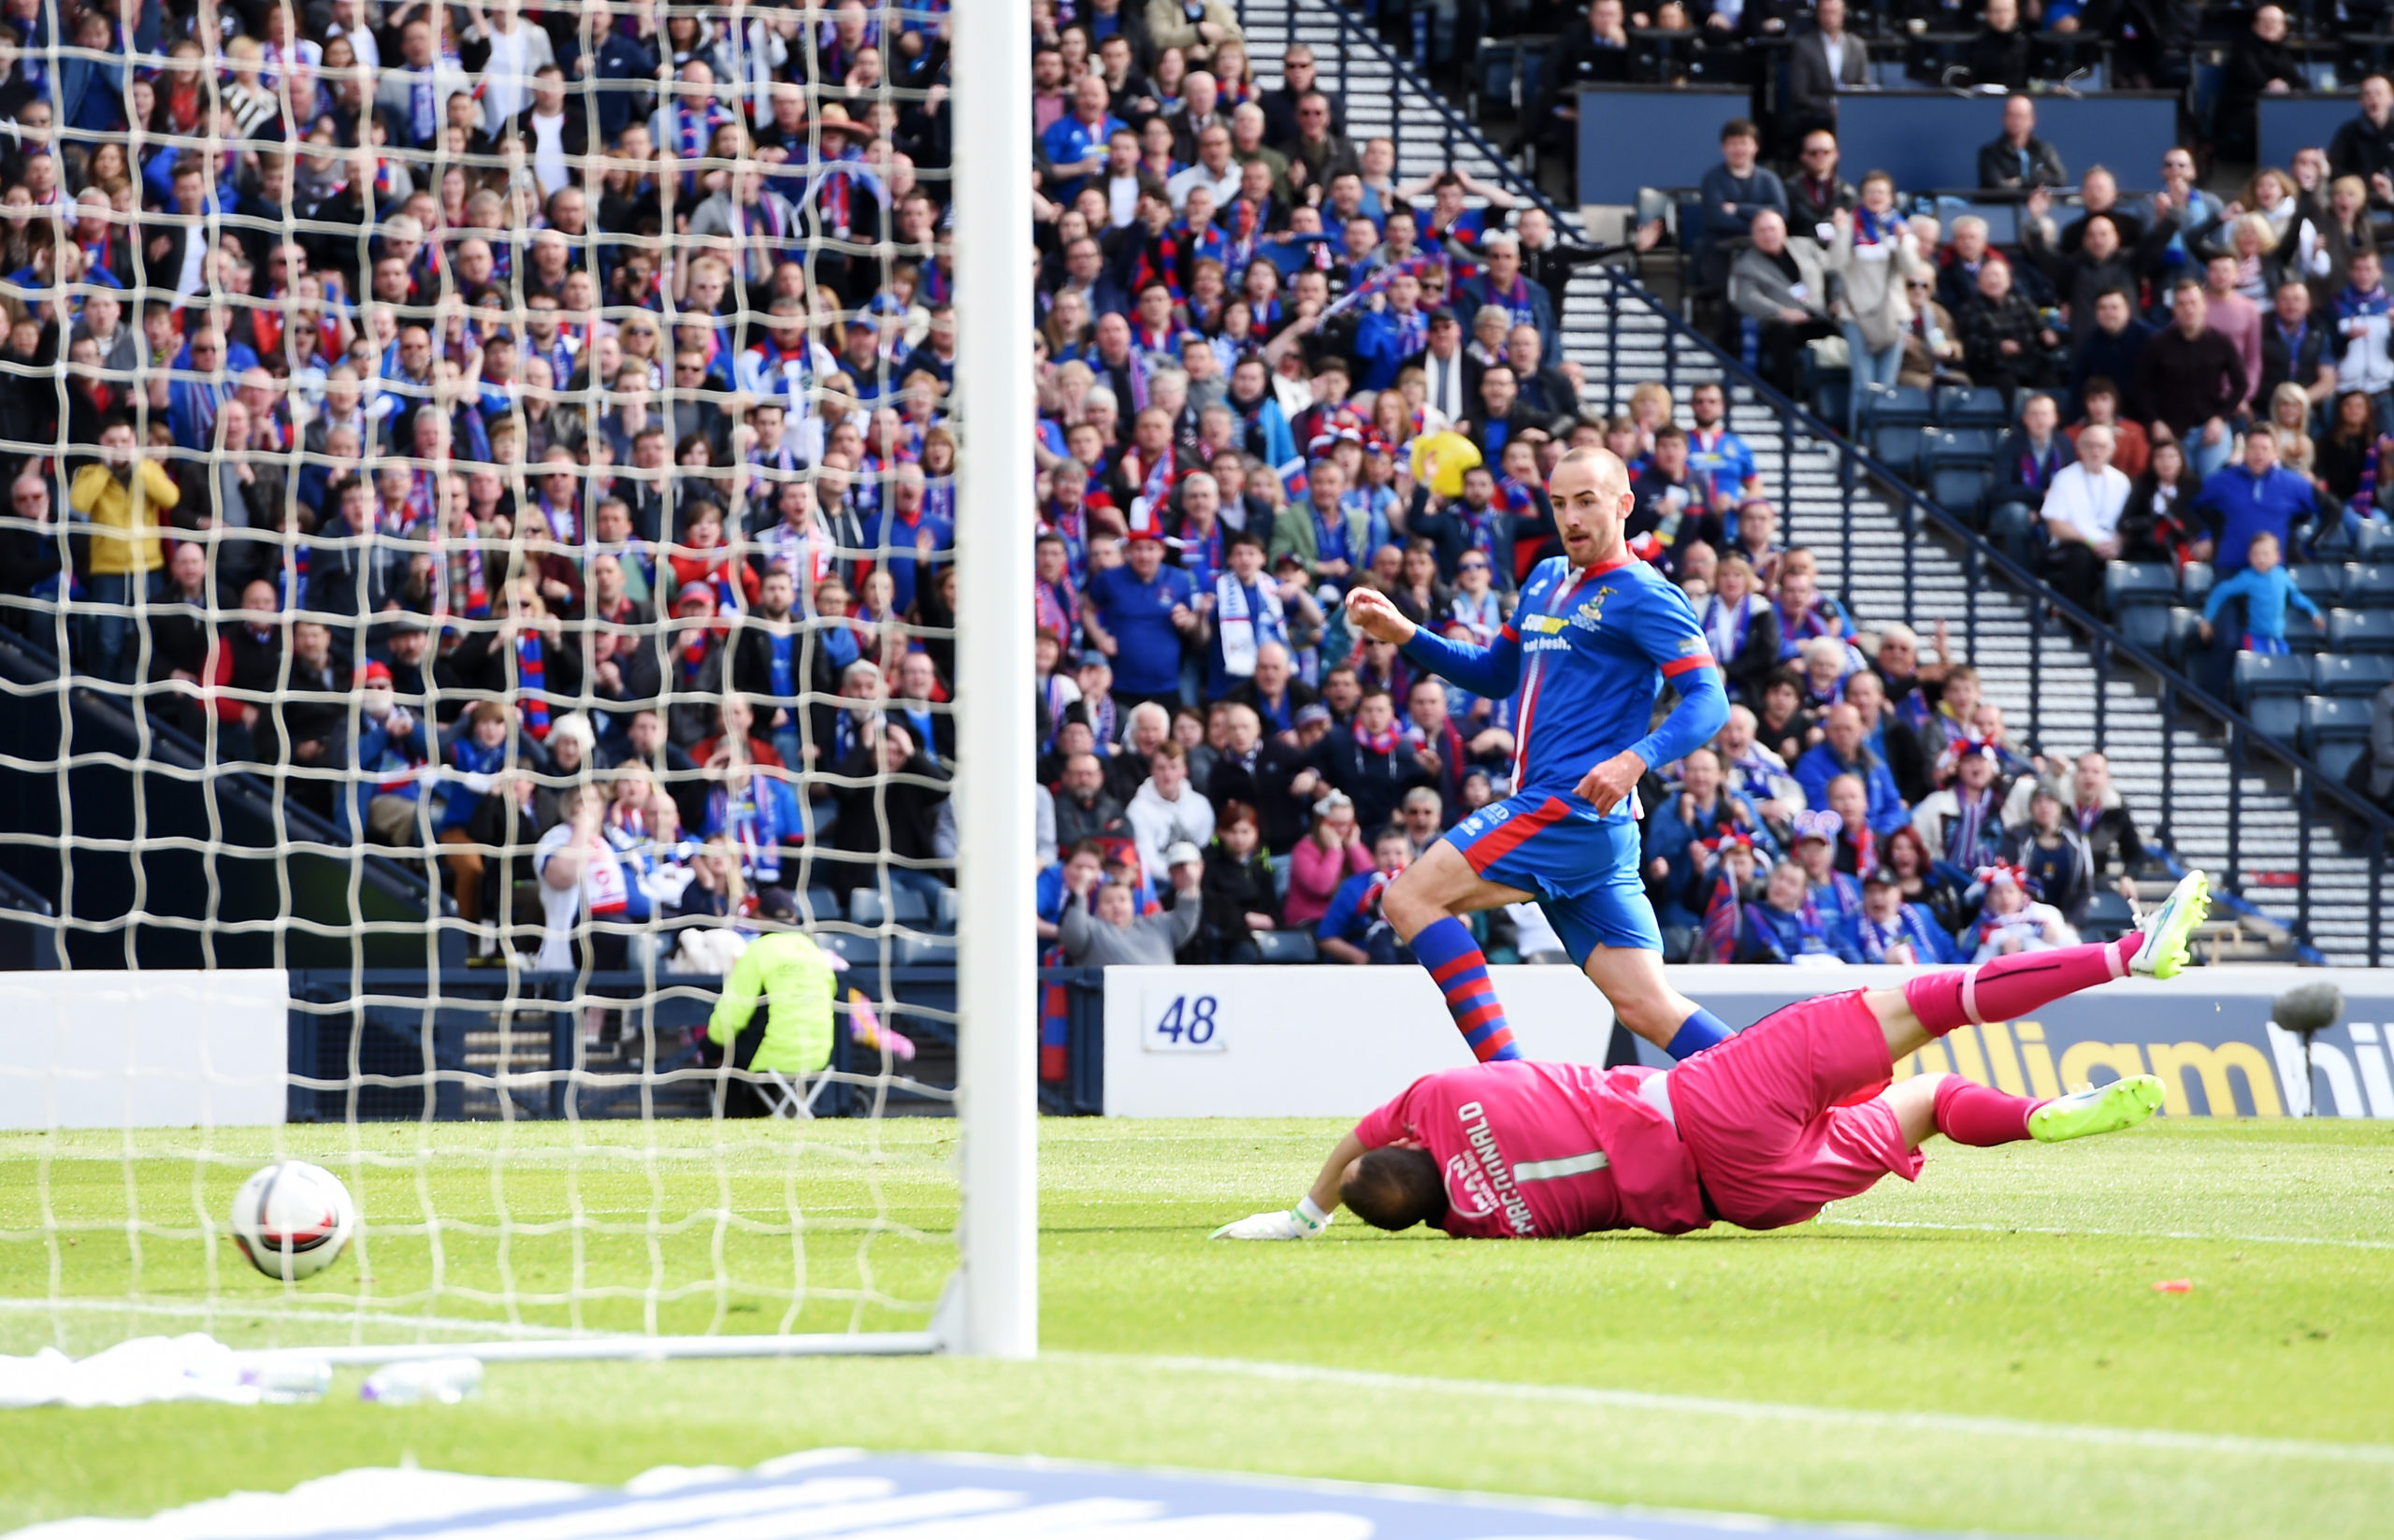 James Vincent slides home the goal that won Caley Thistle the Scottish Cup